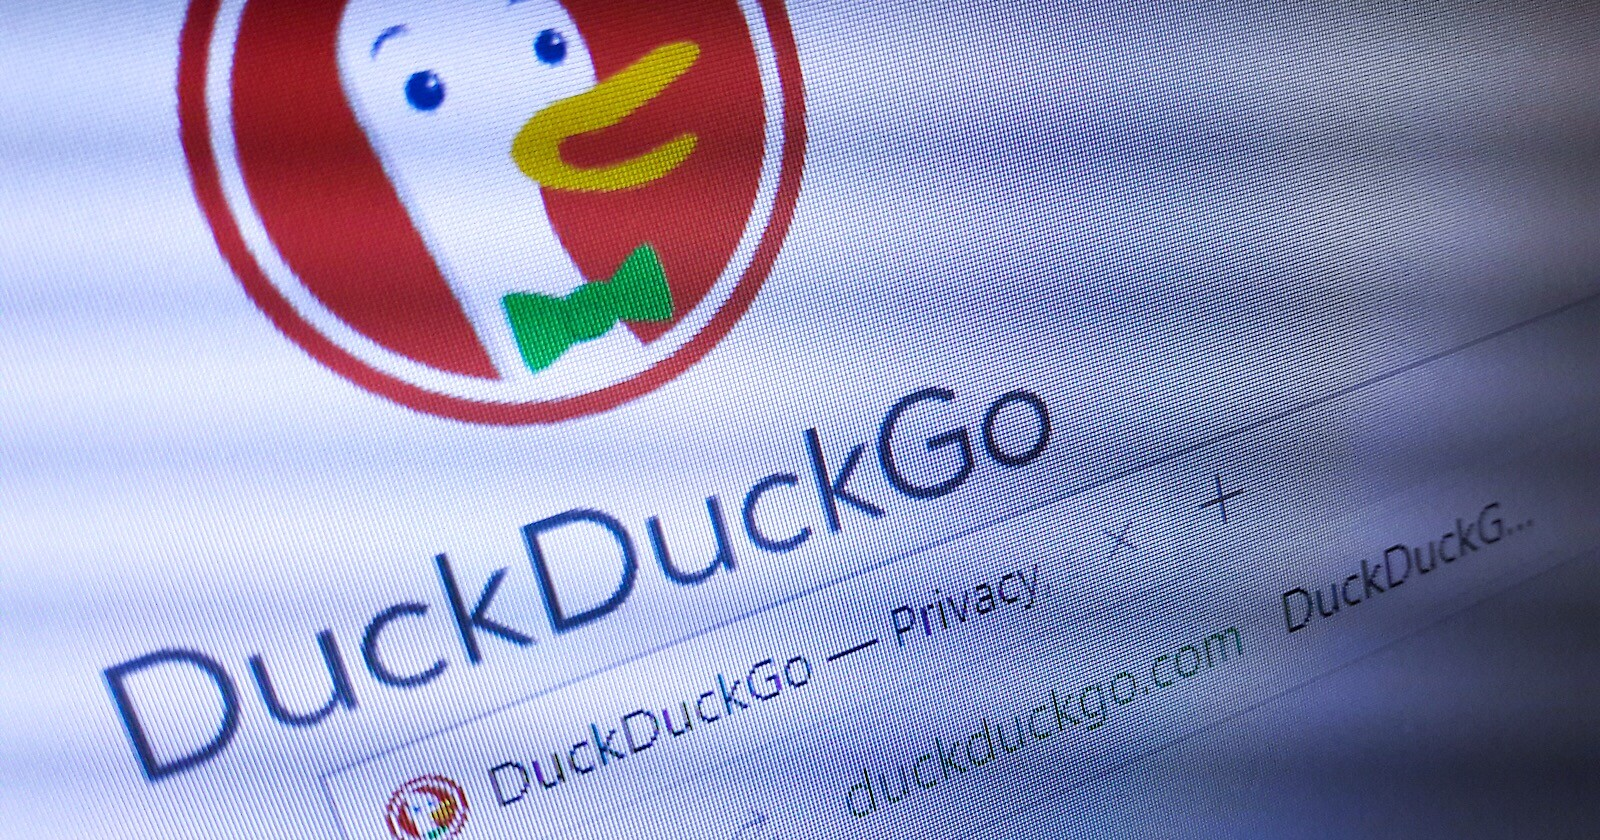 Google's Danny Sullivan Responds Directly to DuckDuckGo's Anti Privacy Claims Search Engine Journal